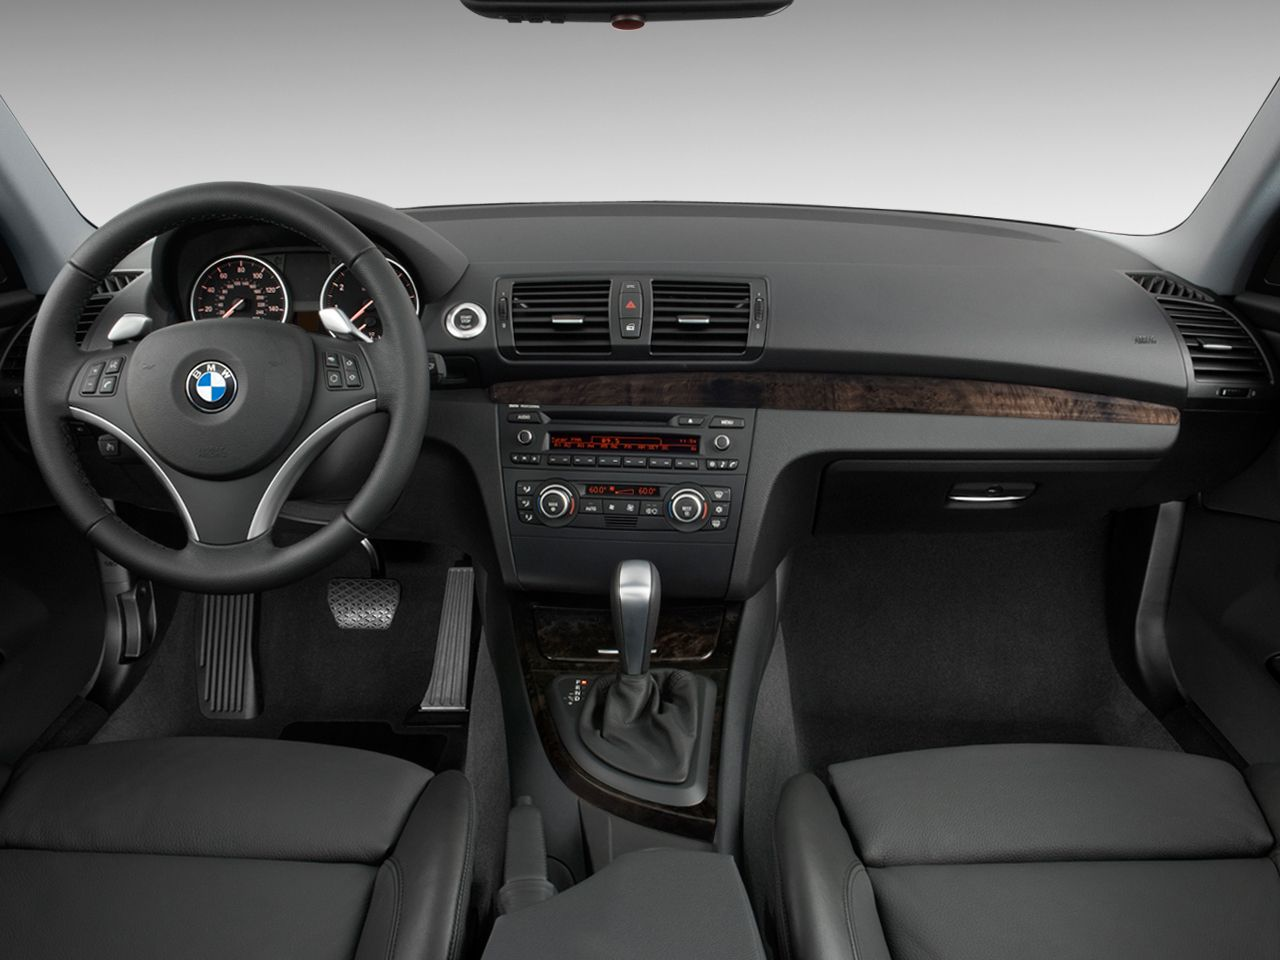 Bmw I Coupe Nice BMW Wallpapers Pinterest BMW - 2012 bmw 128i coupe